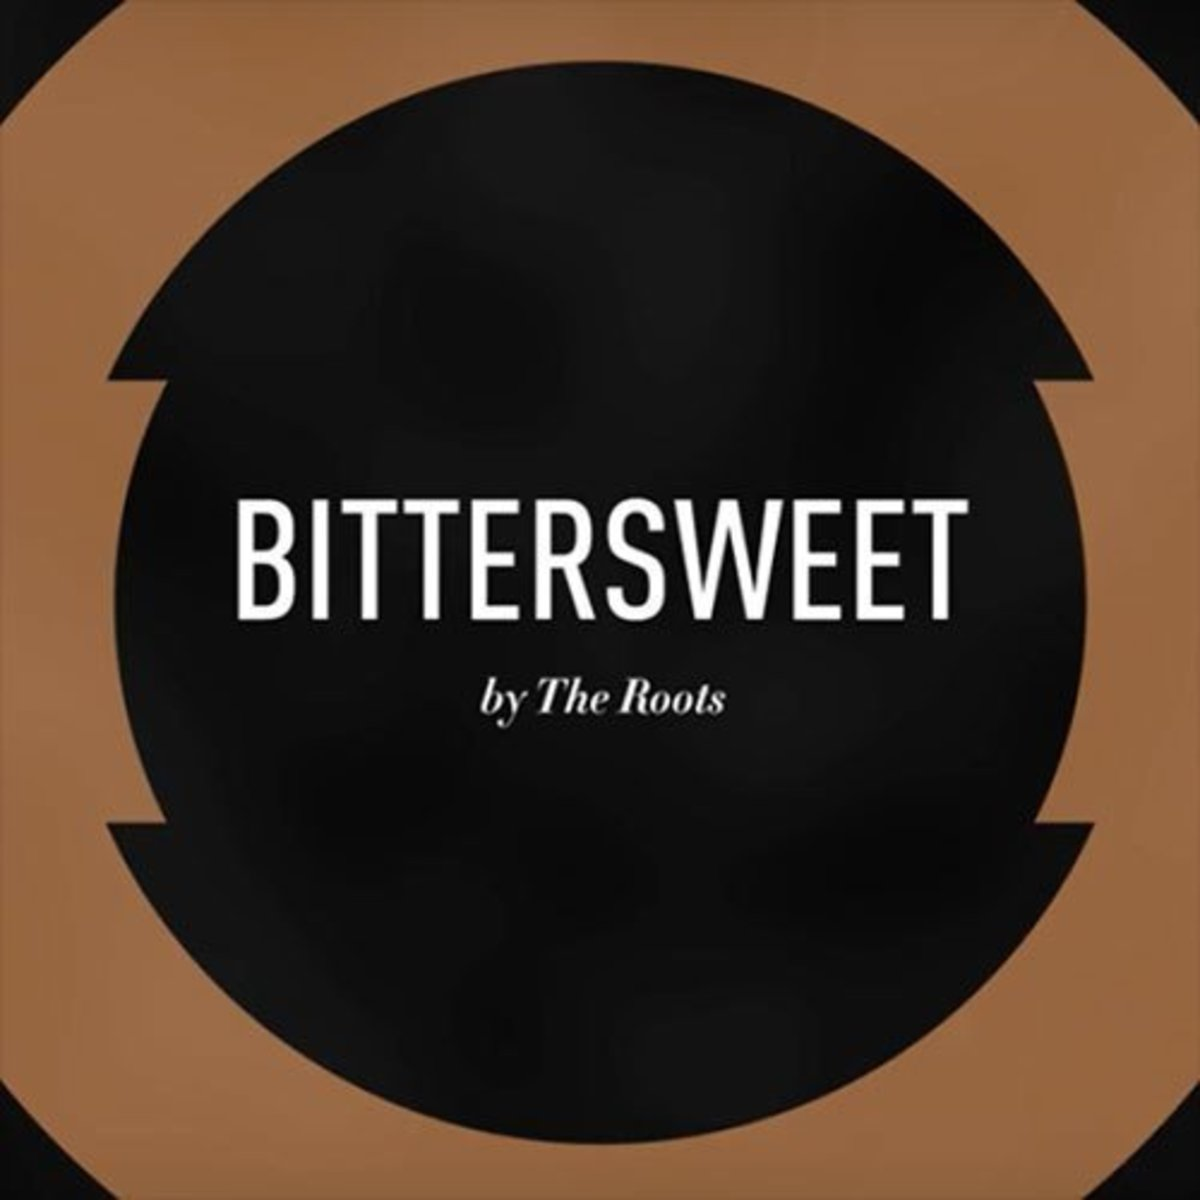 the-roots-bittersweet-side-a.jpg